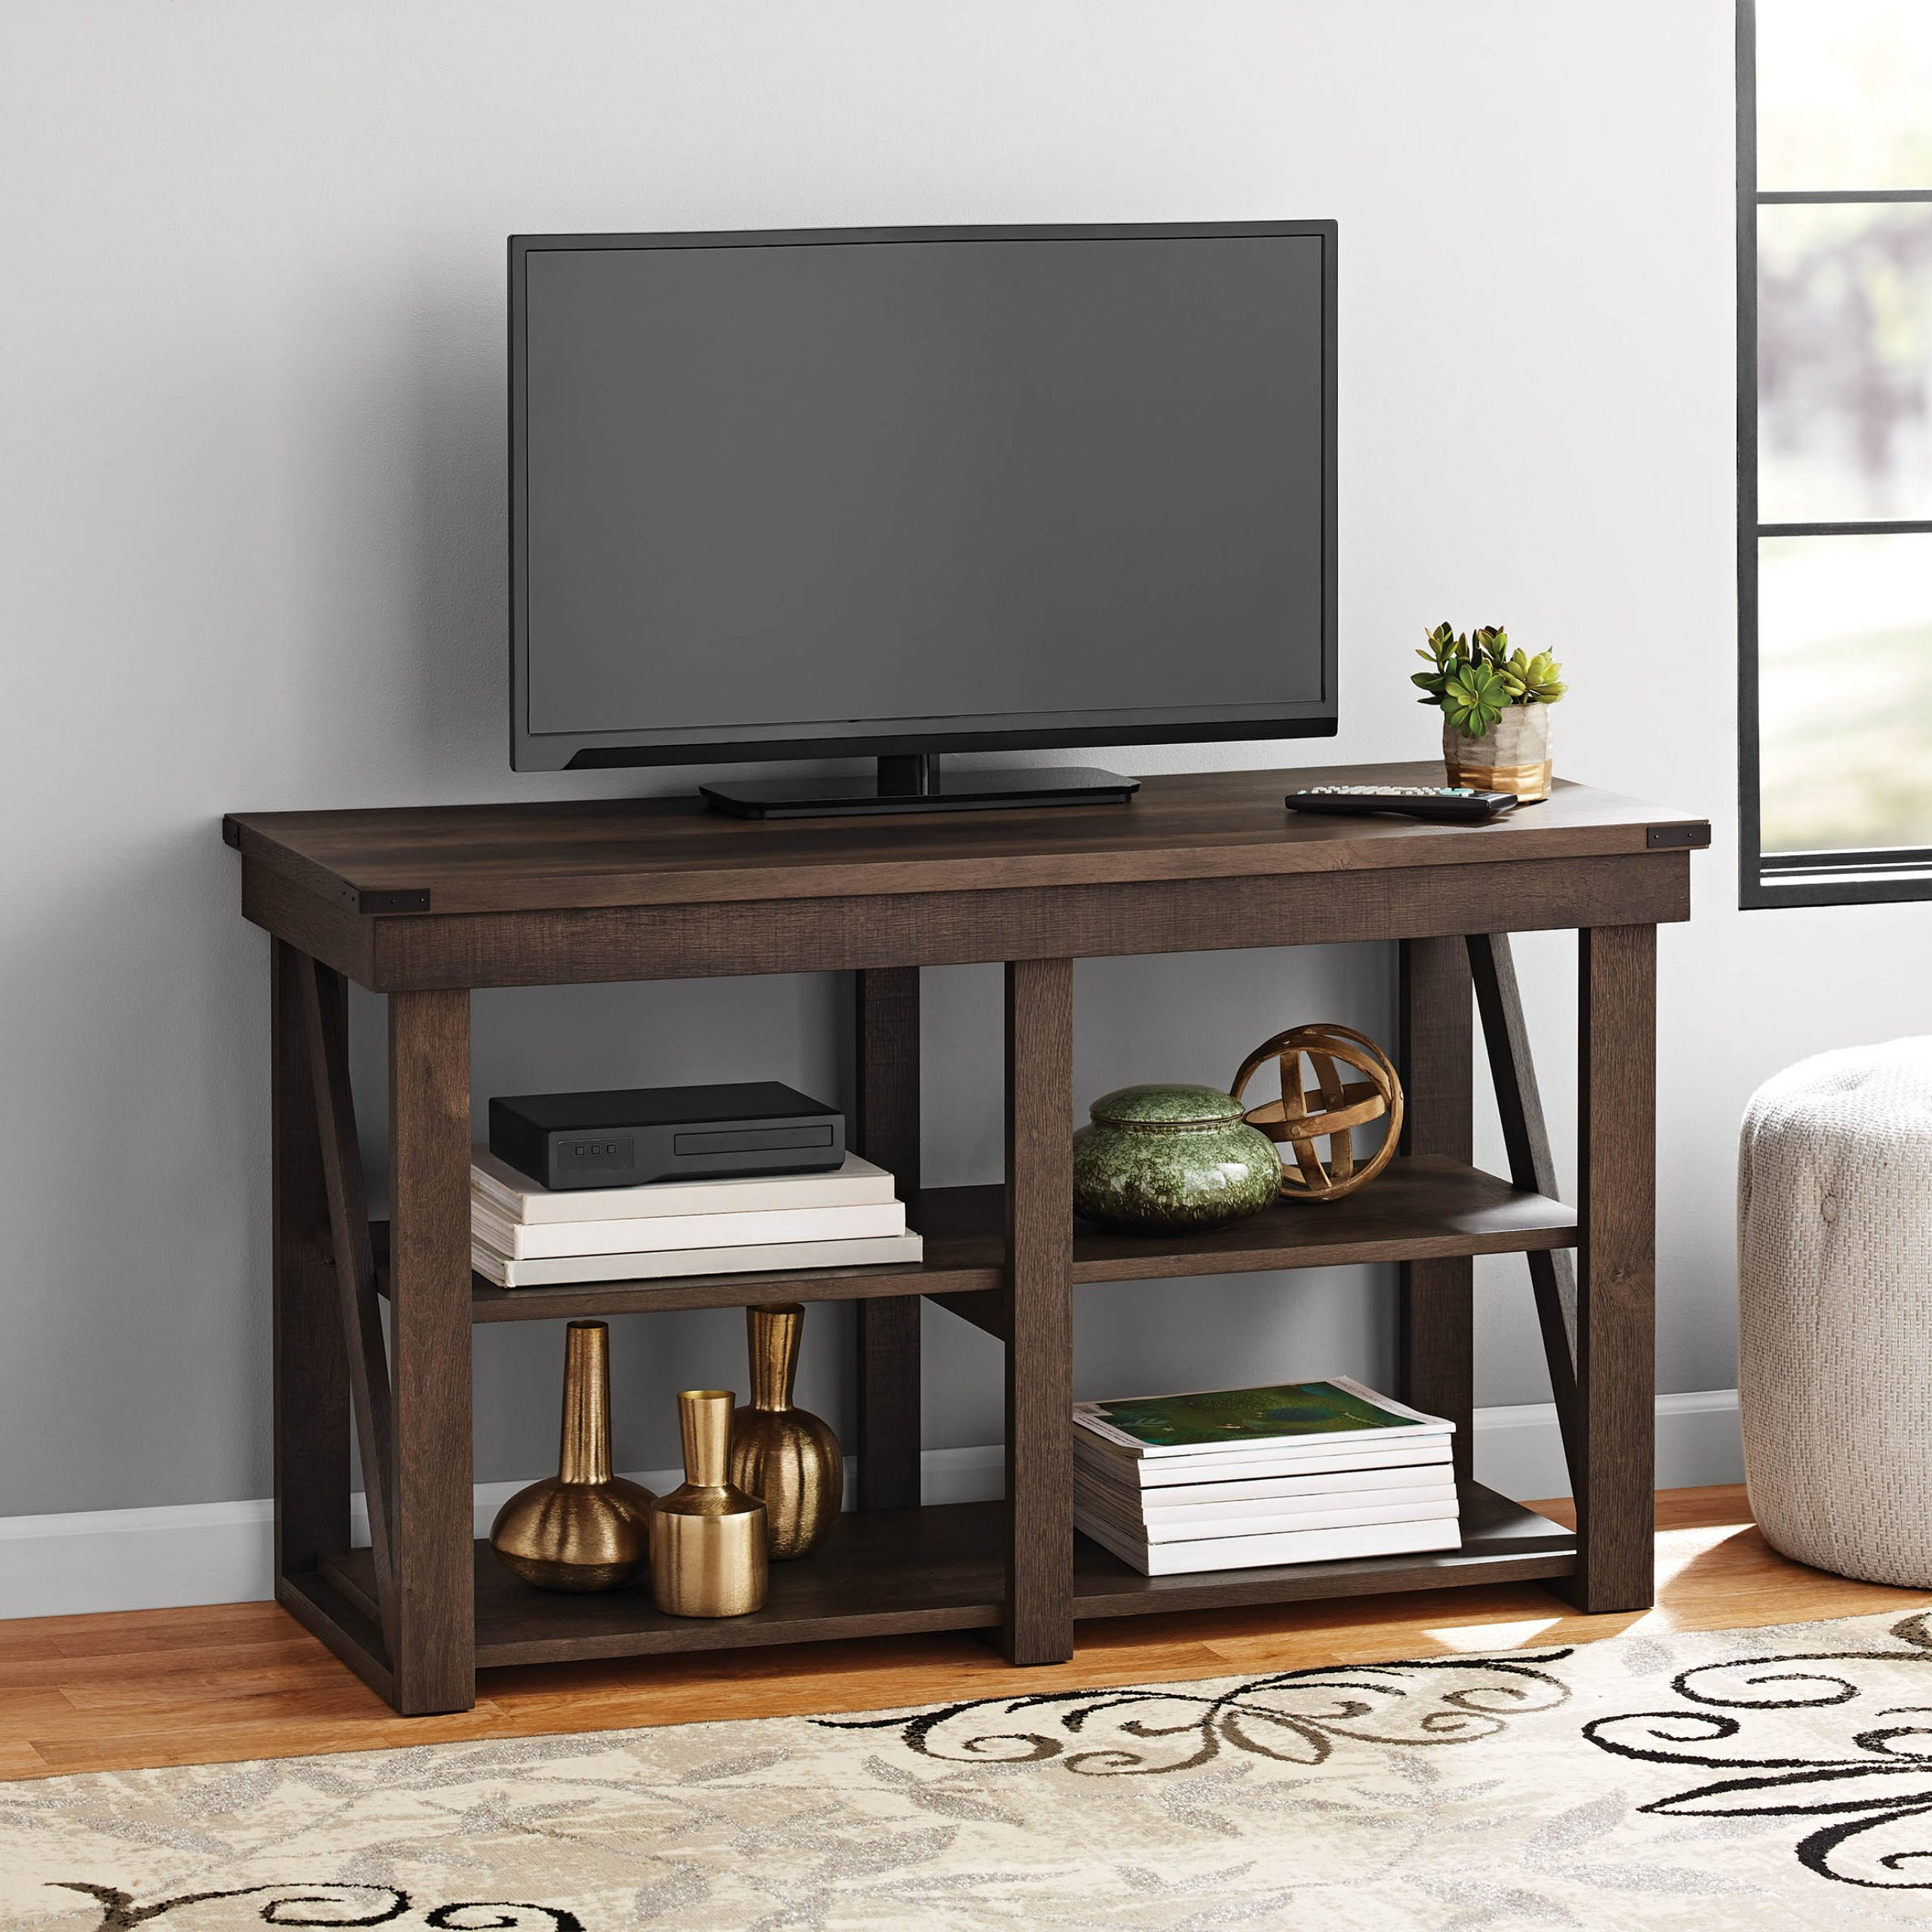 """Famous Lansing Tv Stands For Tvs Up To 55"""" For Mainstays Lawson Tv Stand For Tvs Up To 55"""", Espresso (View 6 of 25)"""